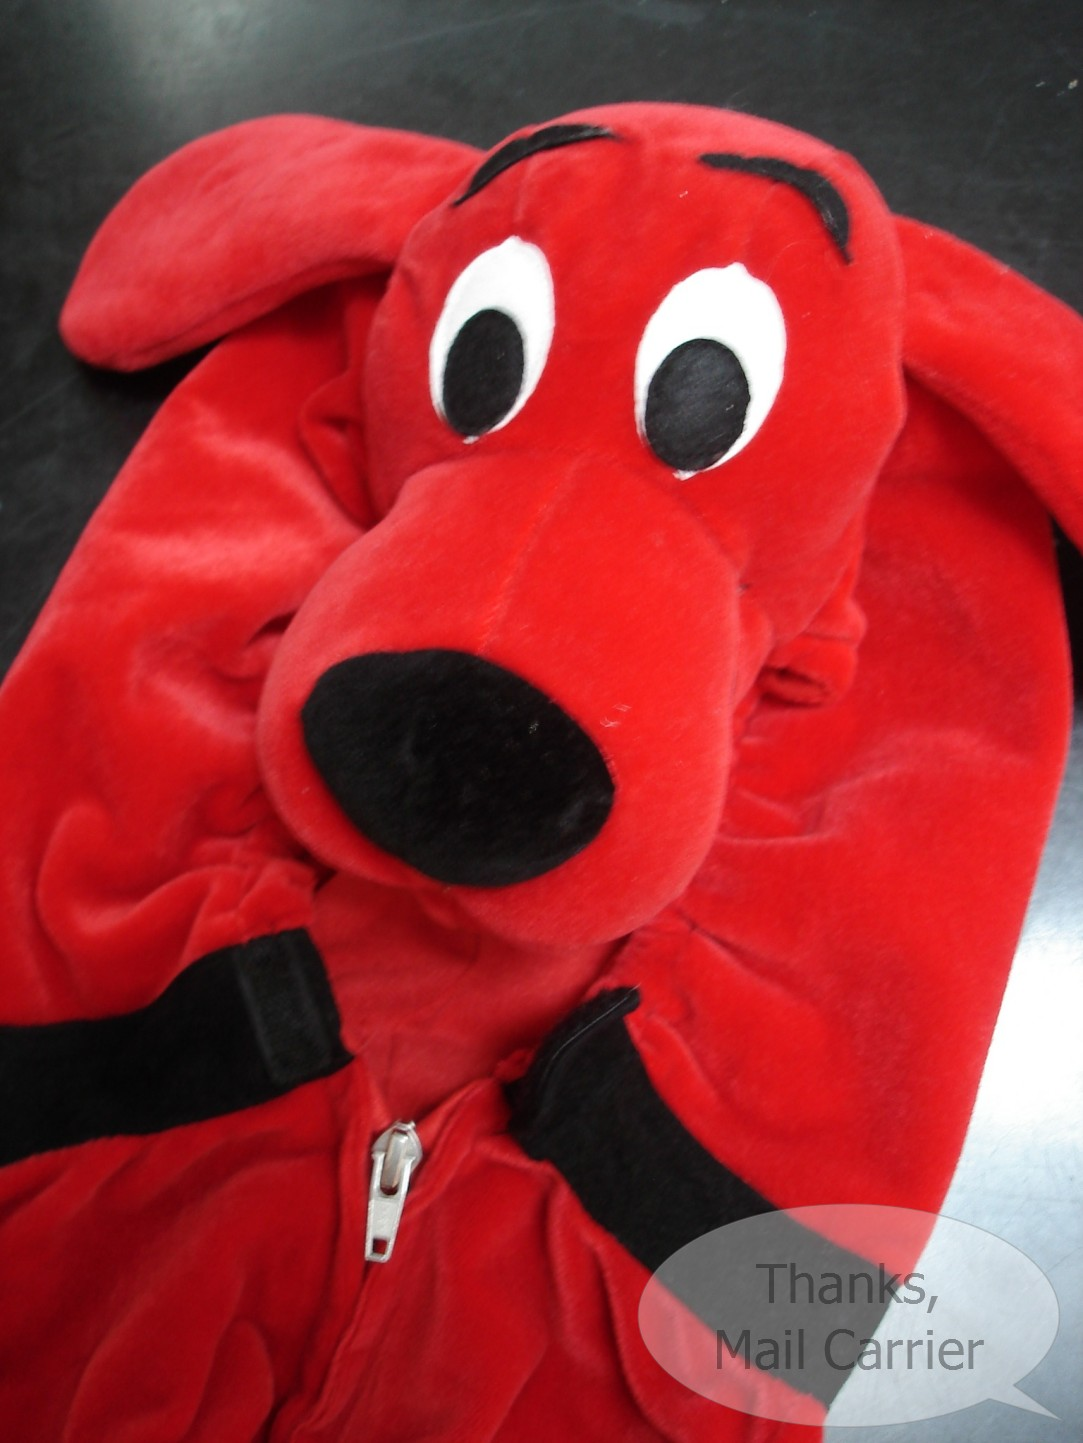 costume discounters clifford the big red dog review - Clifford The Big Red Dog Halloween Costume